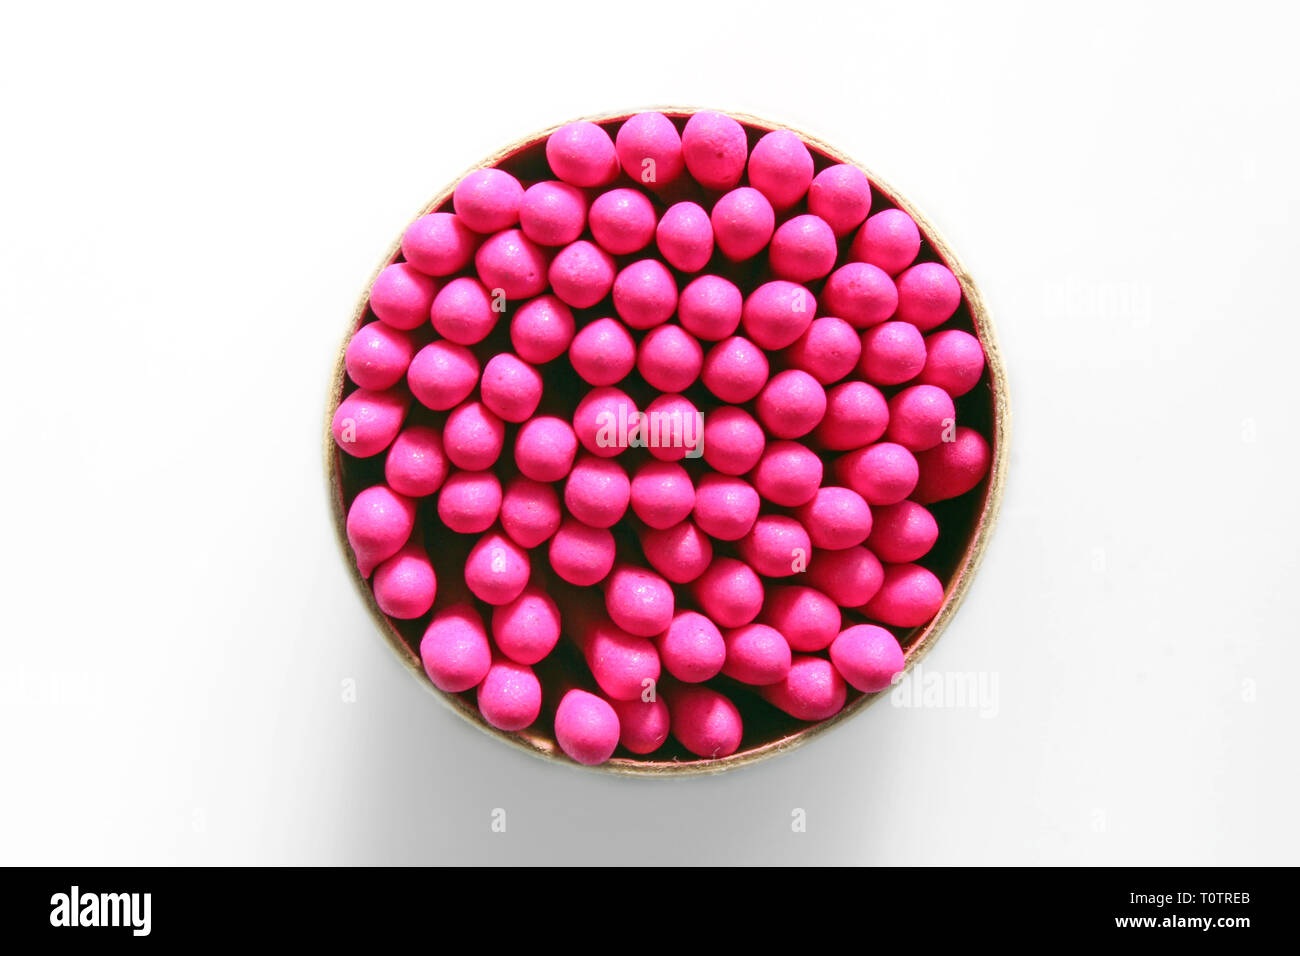 Overhead shot of a bunch of pink-tipped matchsticks, isolated on white background, - Stock Image